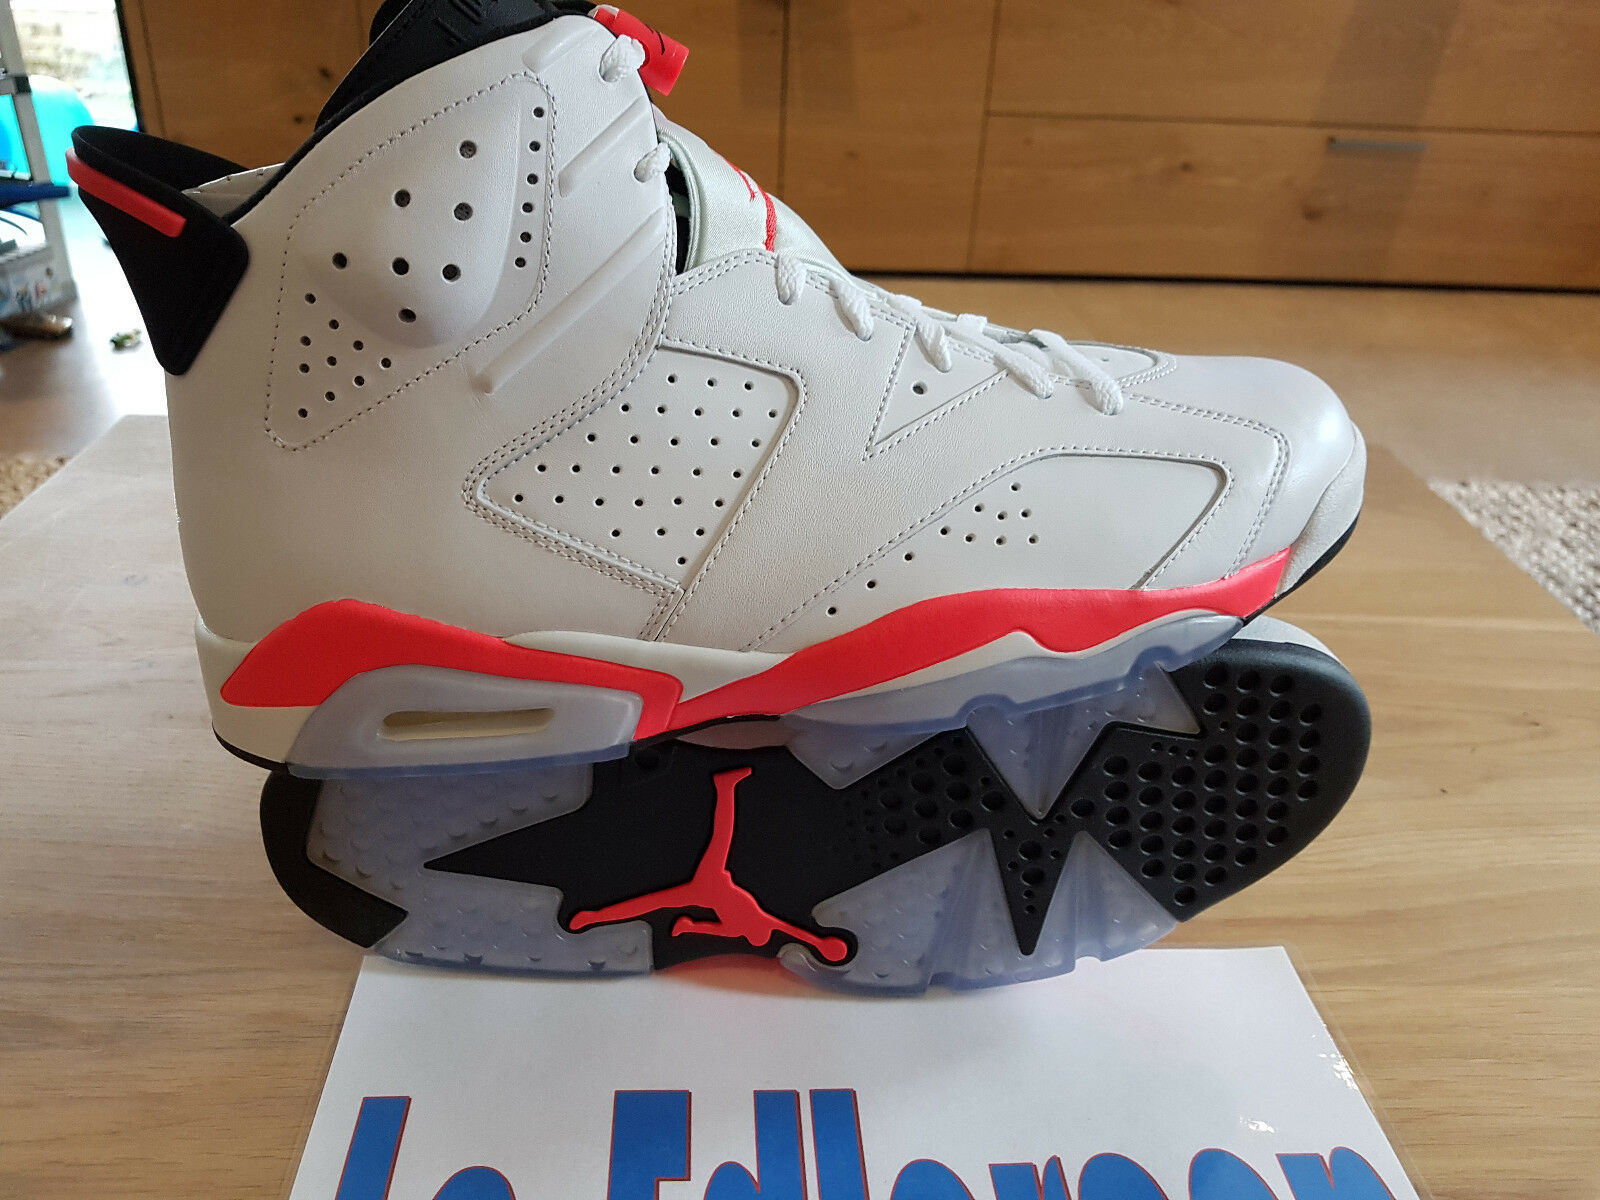 NIKE Air Jordan 6 VI NIB US13 wow